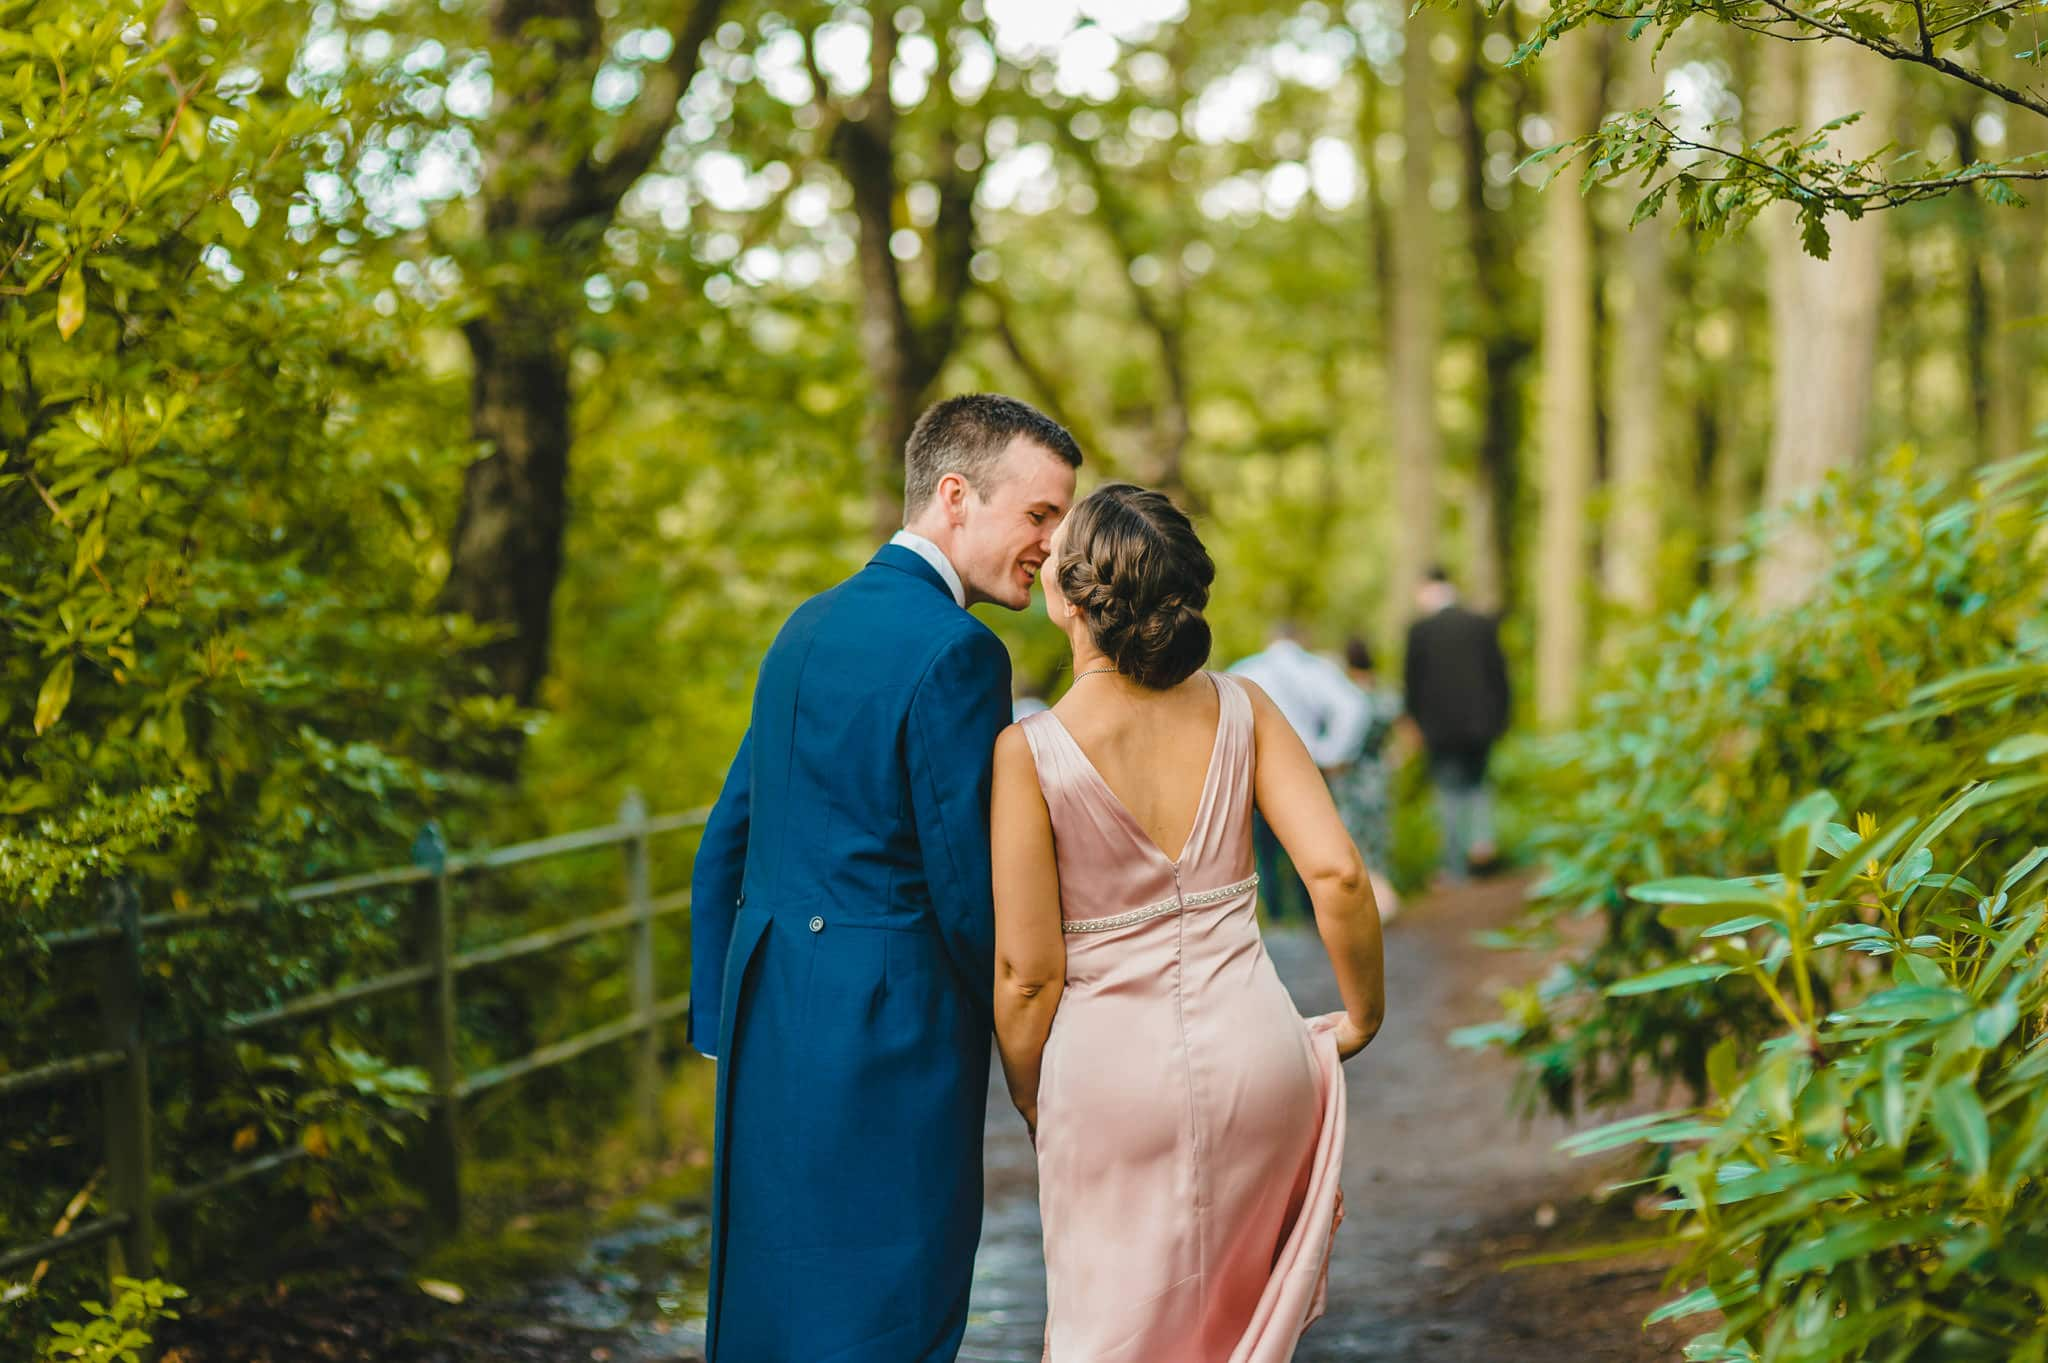 Wedding photography at Y Talbot Hotel in Tregaron, Wales | Tina + Phil 38